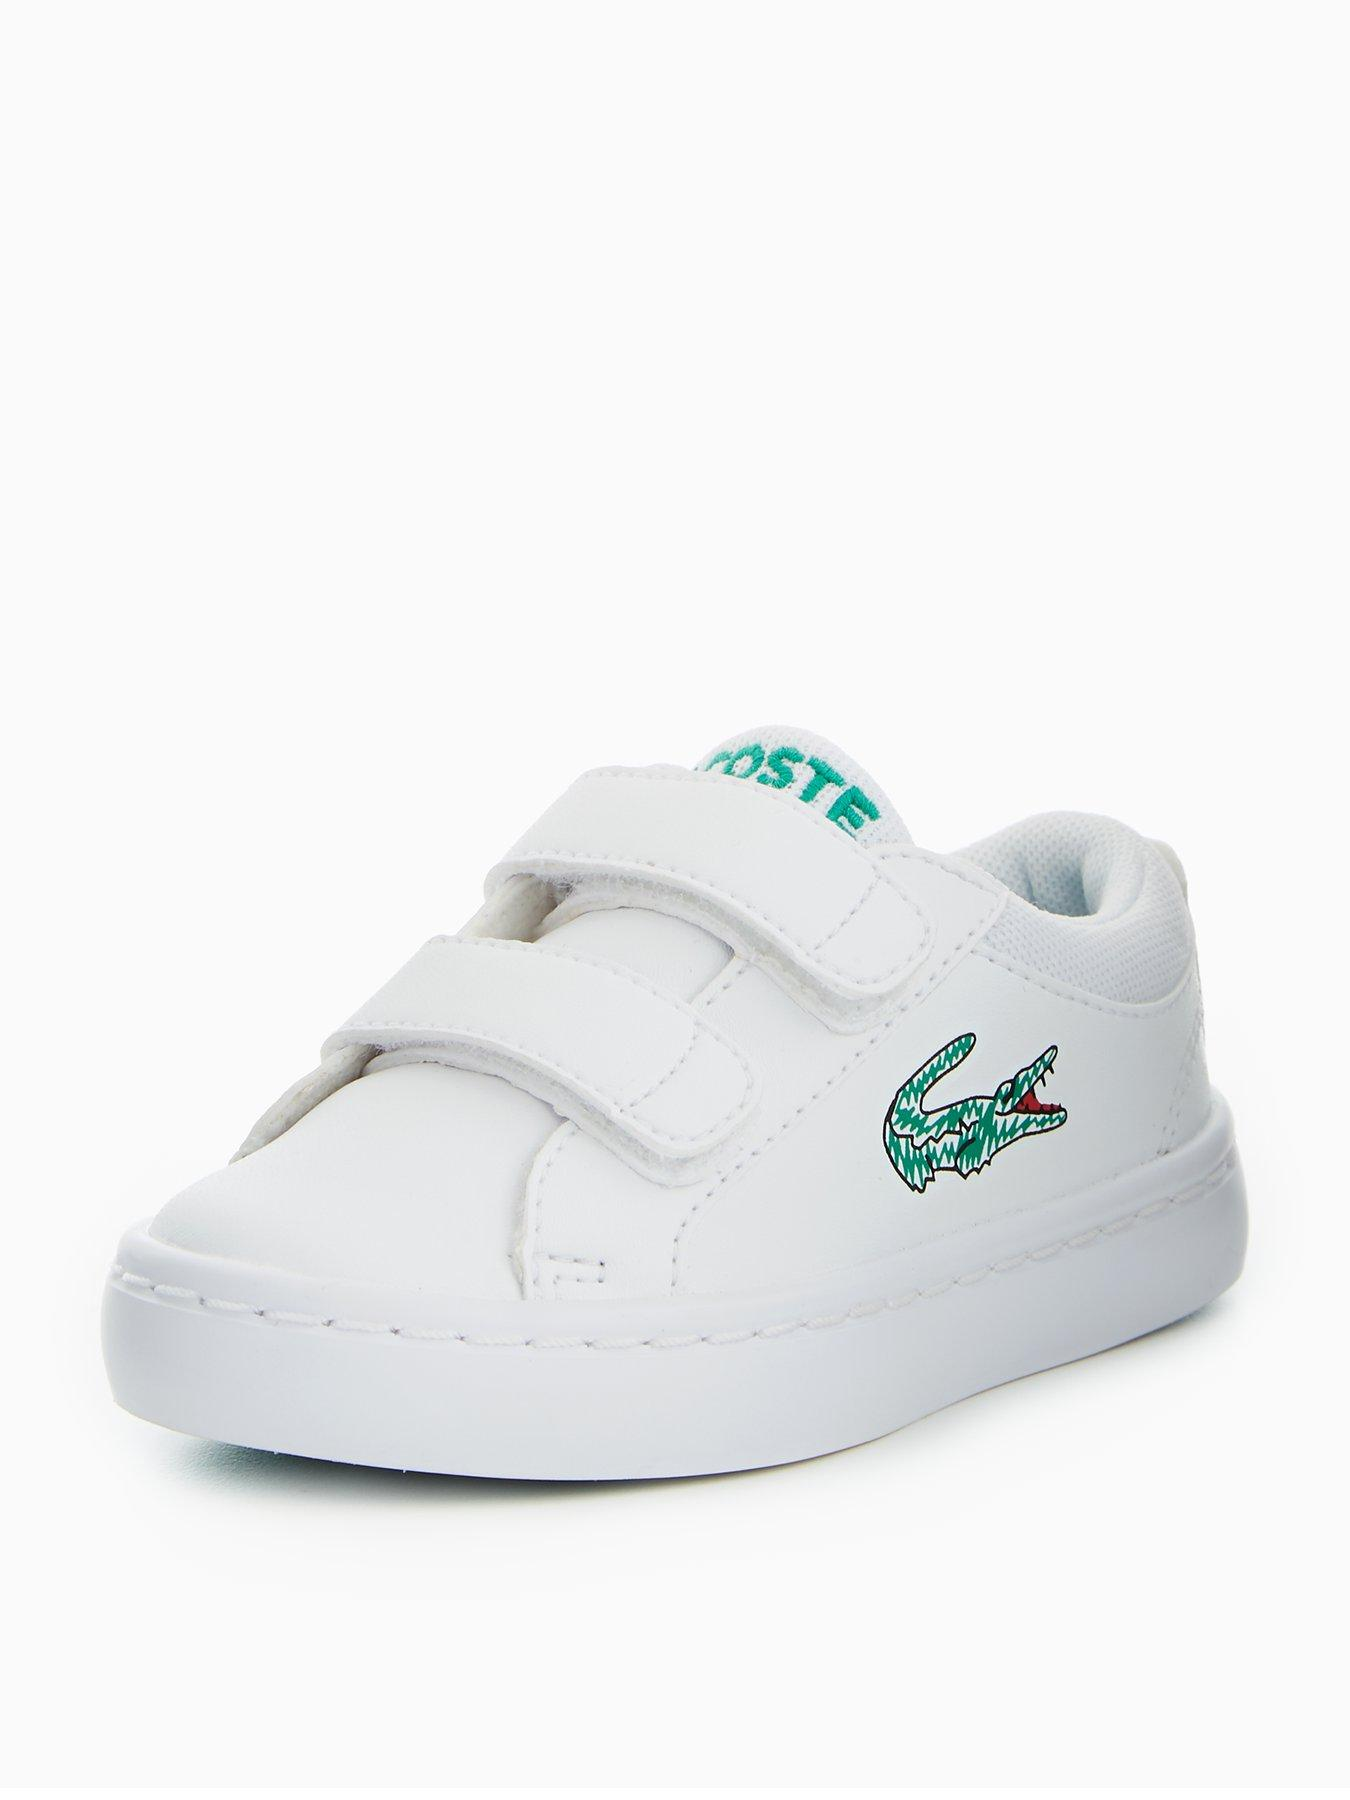 Lacoste Straightset Strap 118 1 Trainer